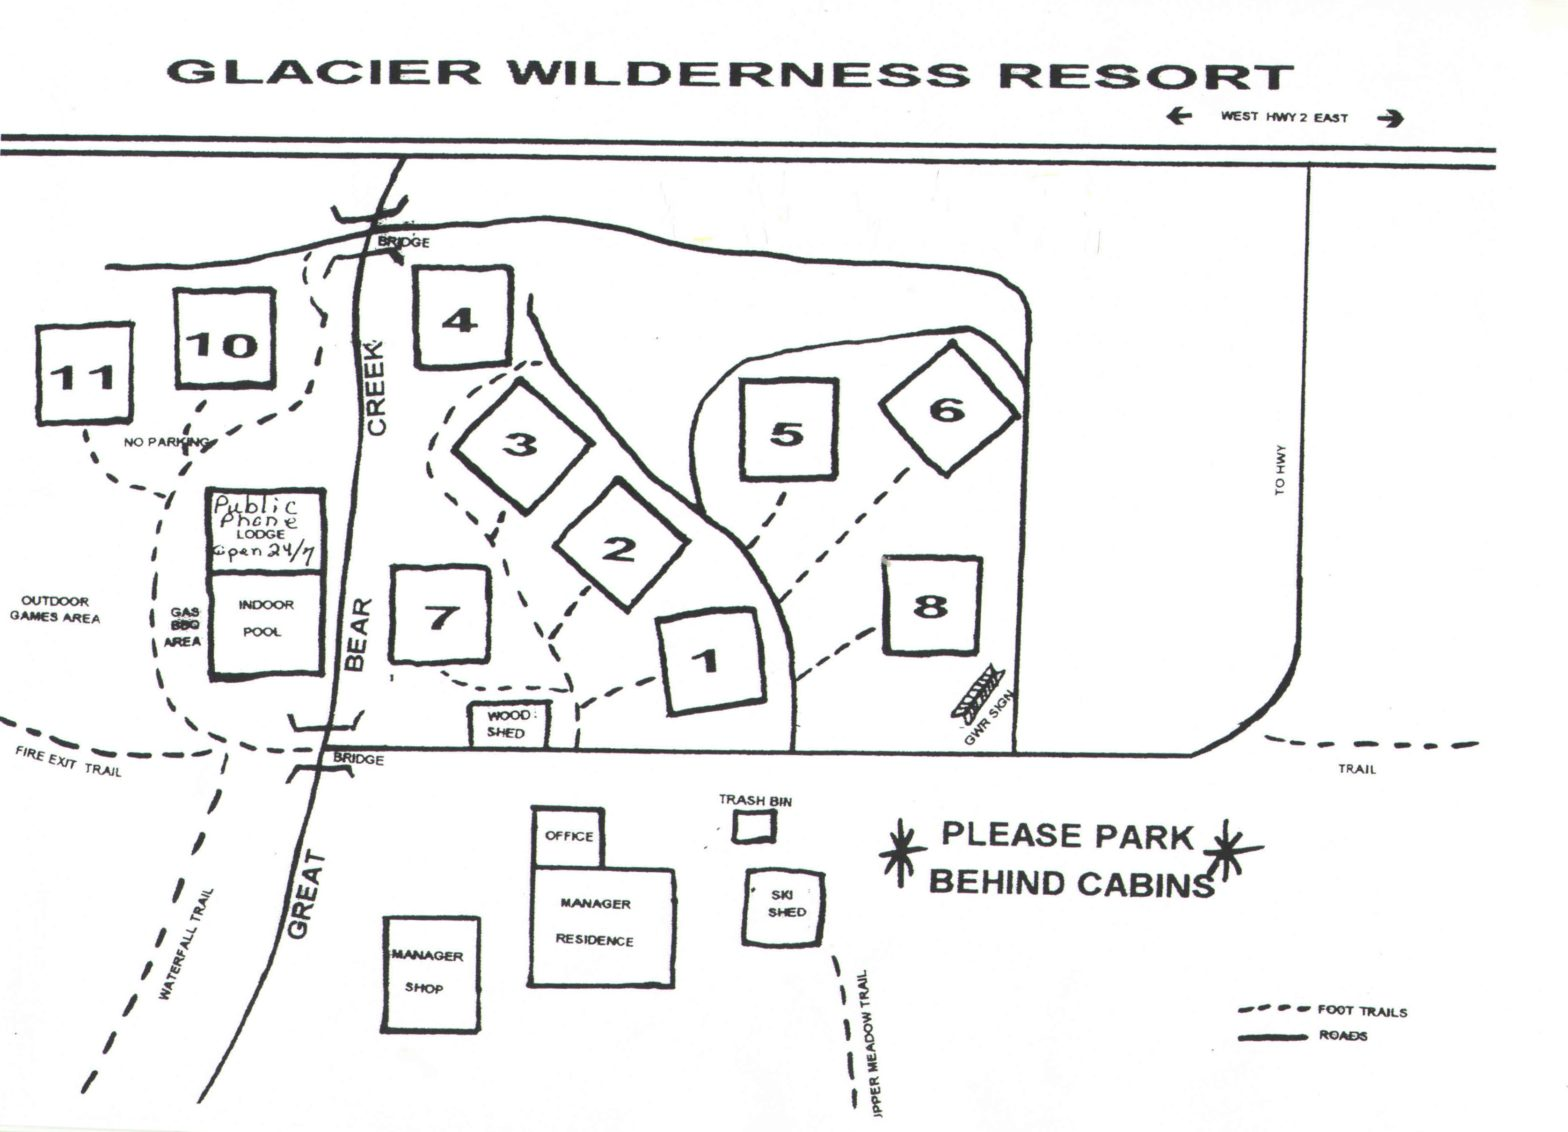 Glacier Wilderness Resort Map